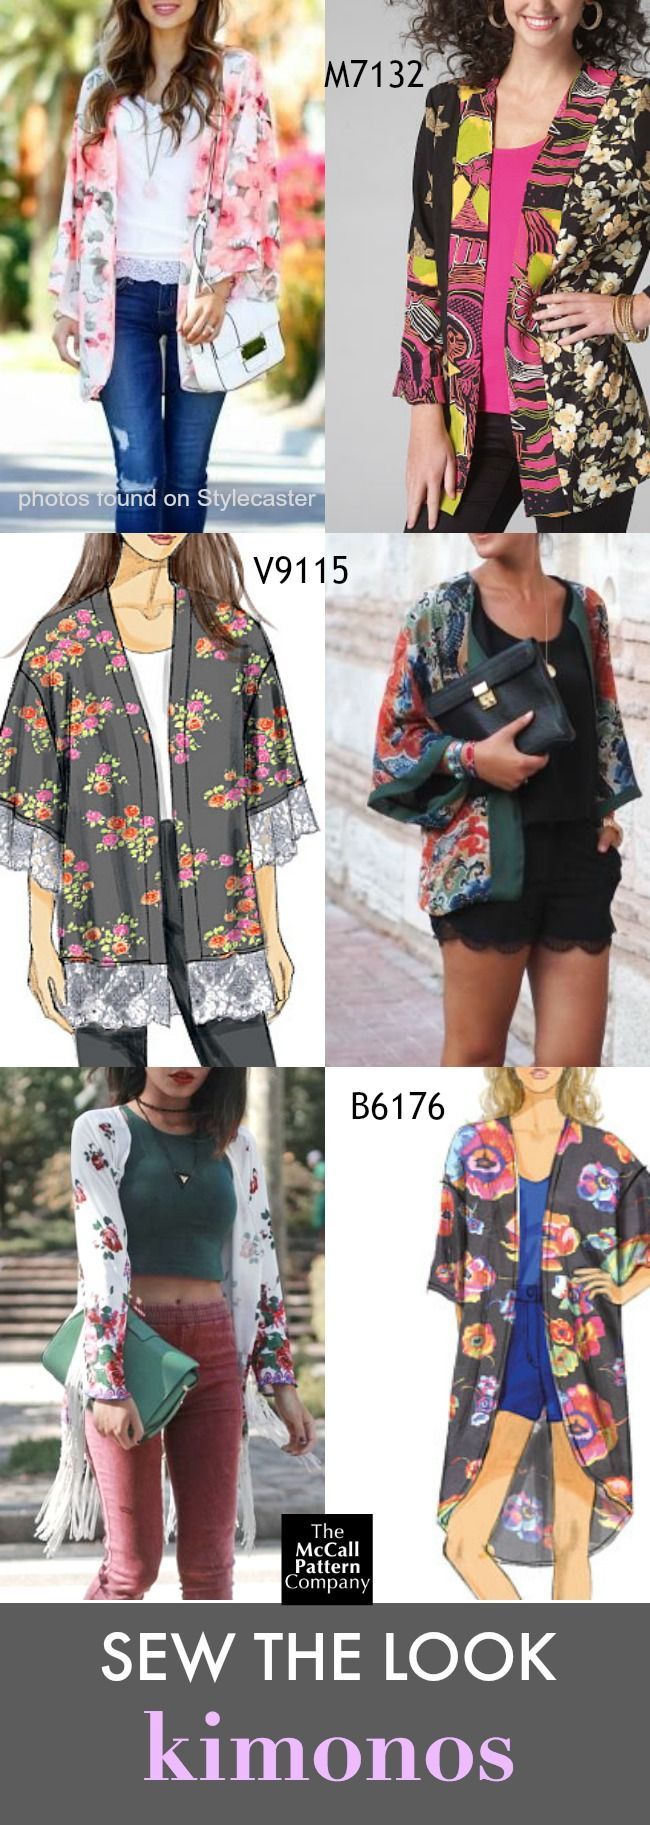 Kimonos are the perfect layering piece for spring and summer. These are different kimono sewing pattern options from McCall's, Butterick and Vogue Patterns,